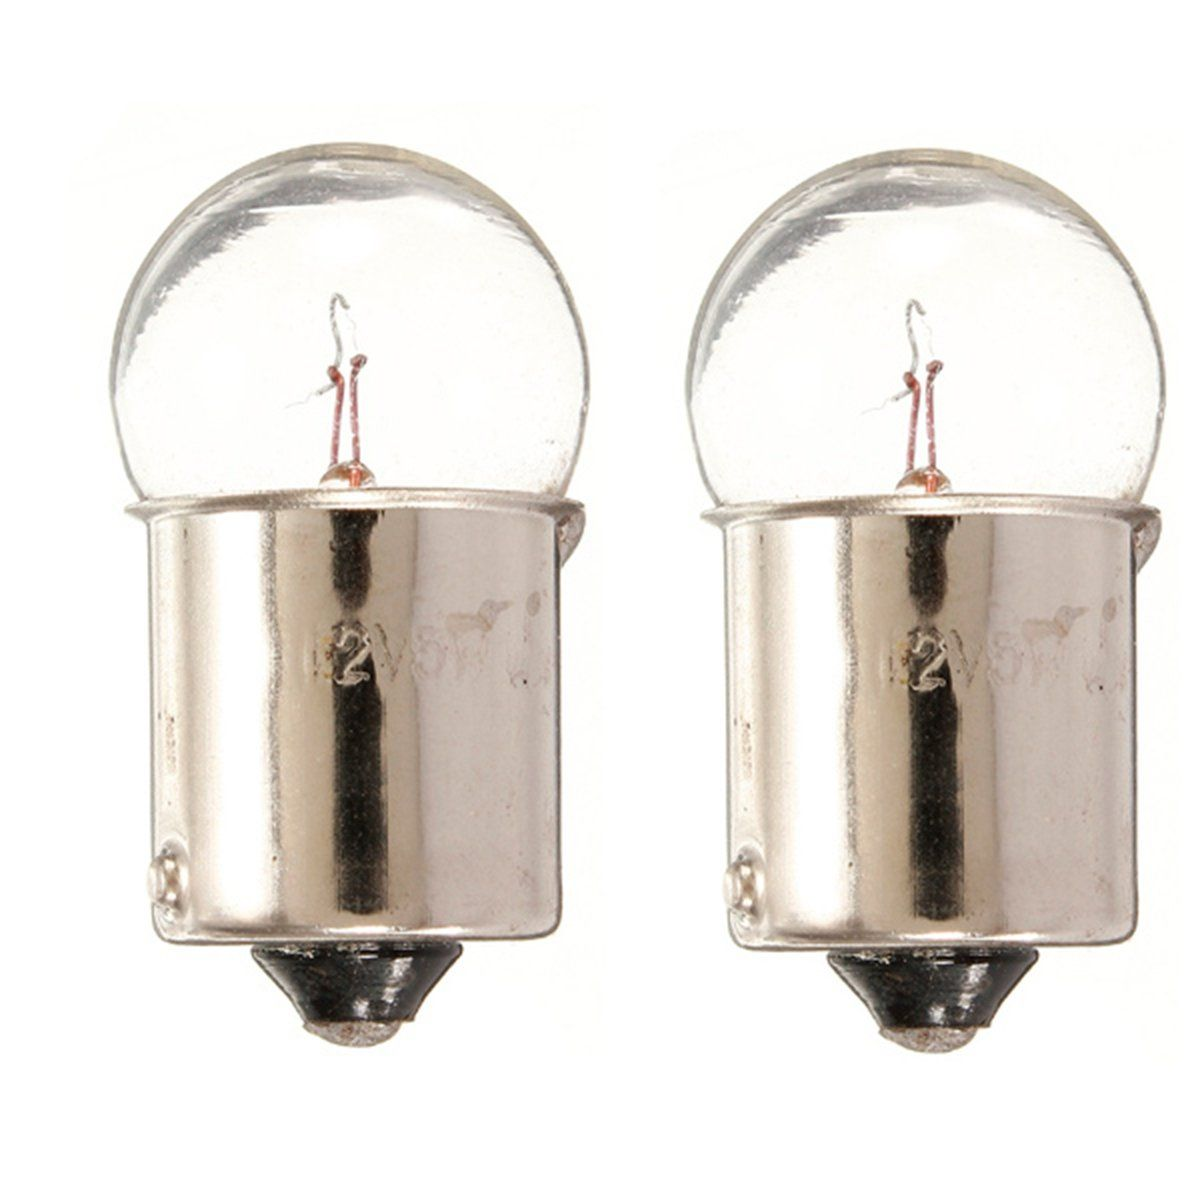 Us 1 64 39 1 Pair 12v 5w 207 Brake Reverse Tail Stop Indicator Light Car Bulbs Car Lights From Automobiles Motorcycles On Banggood Com